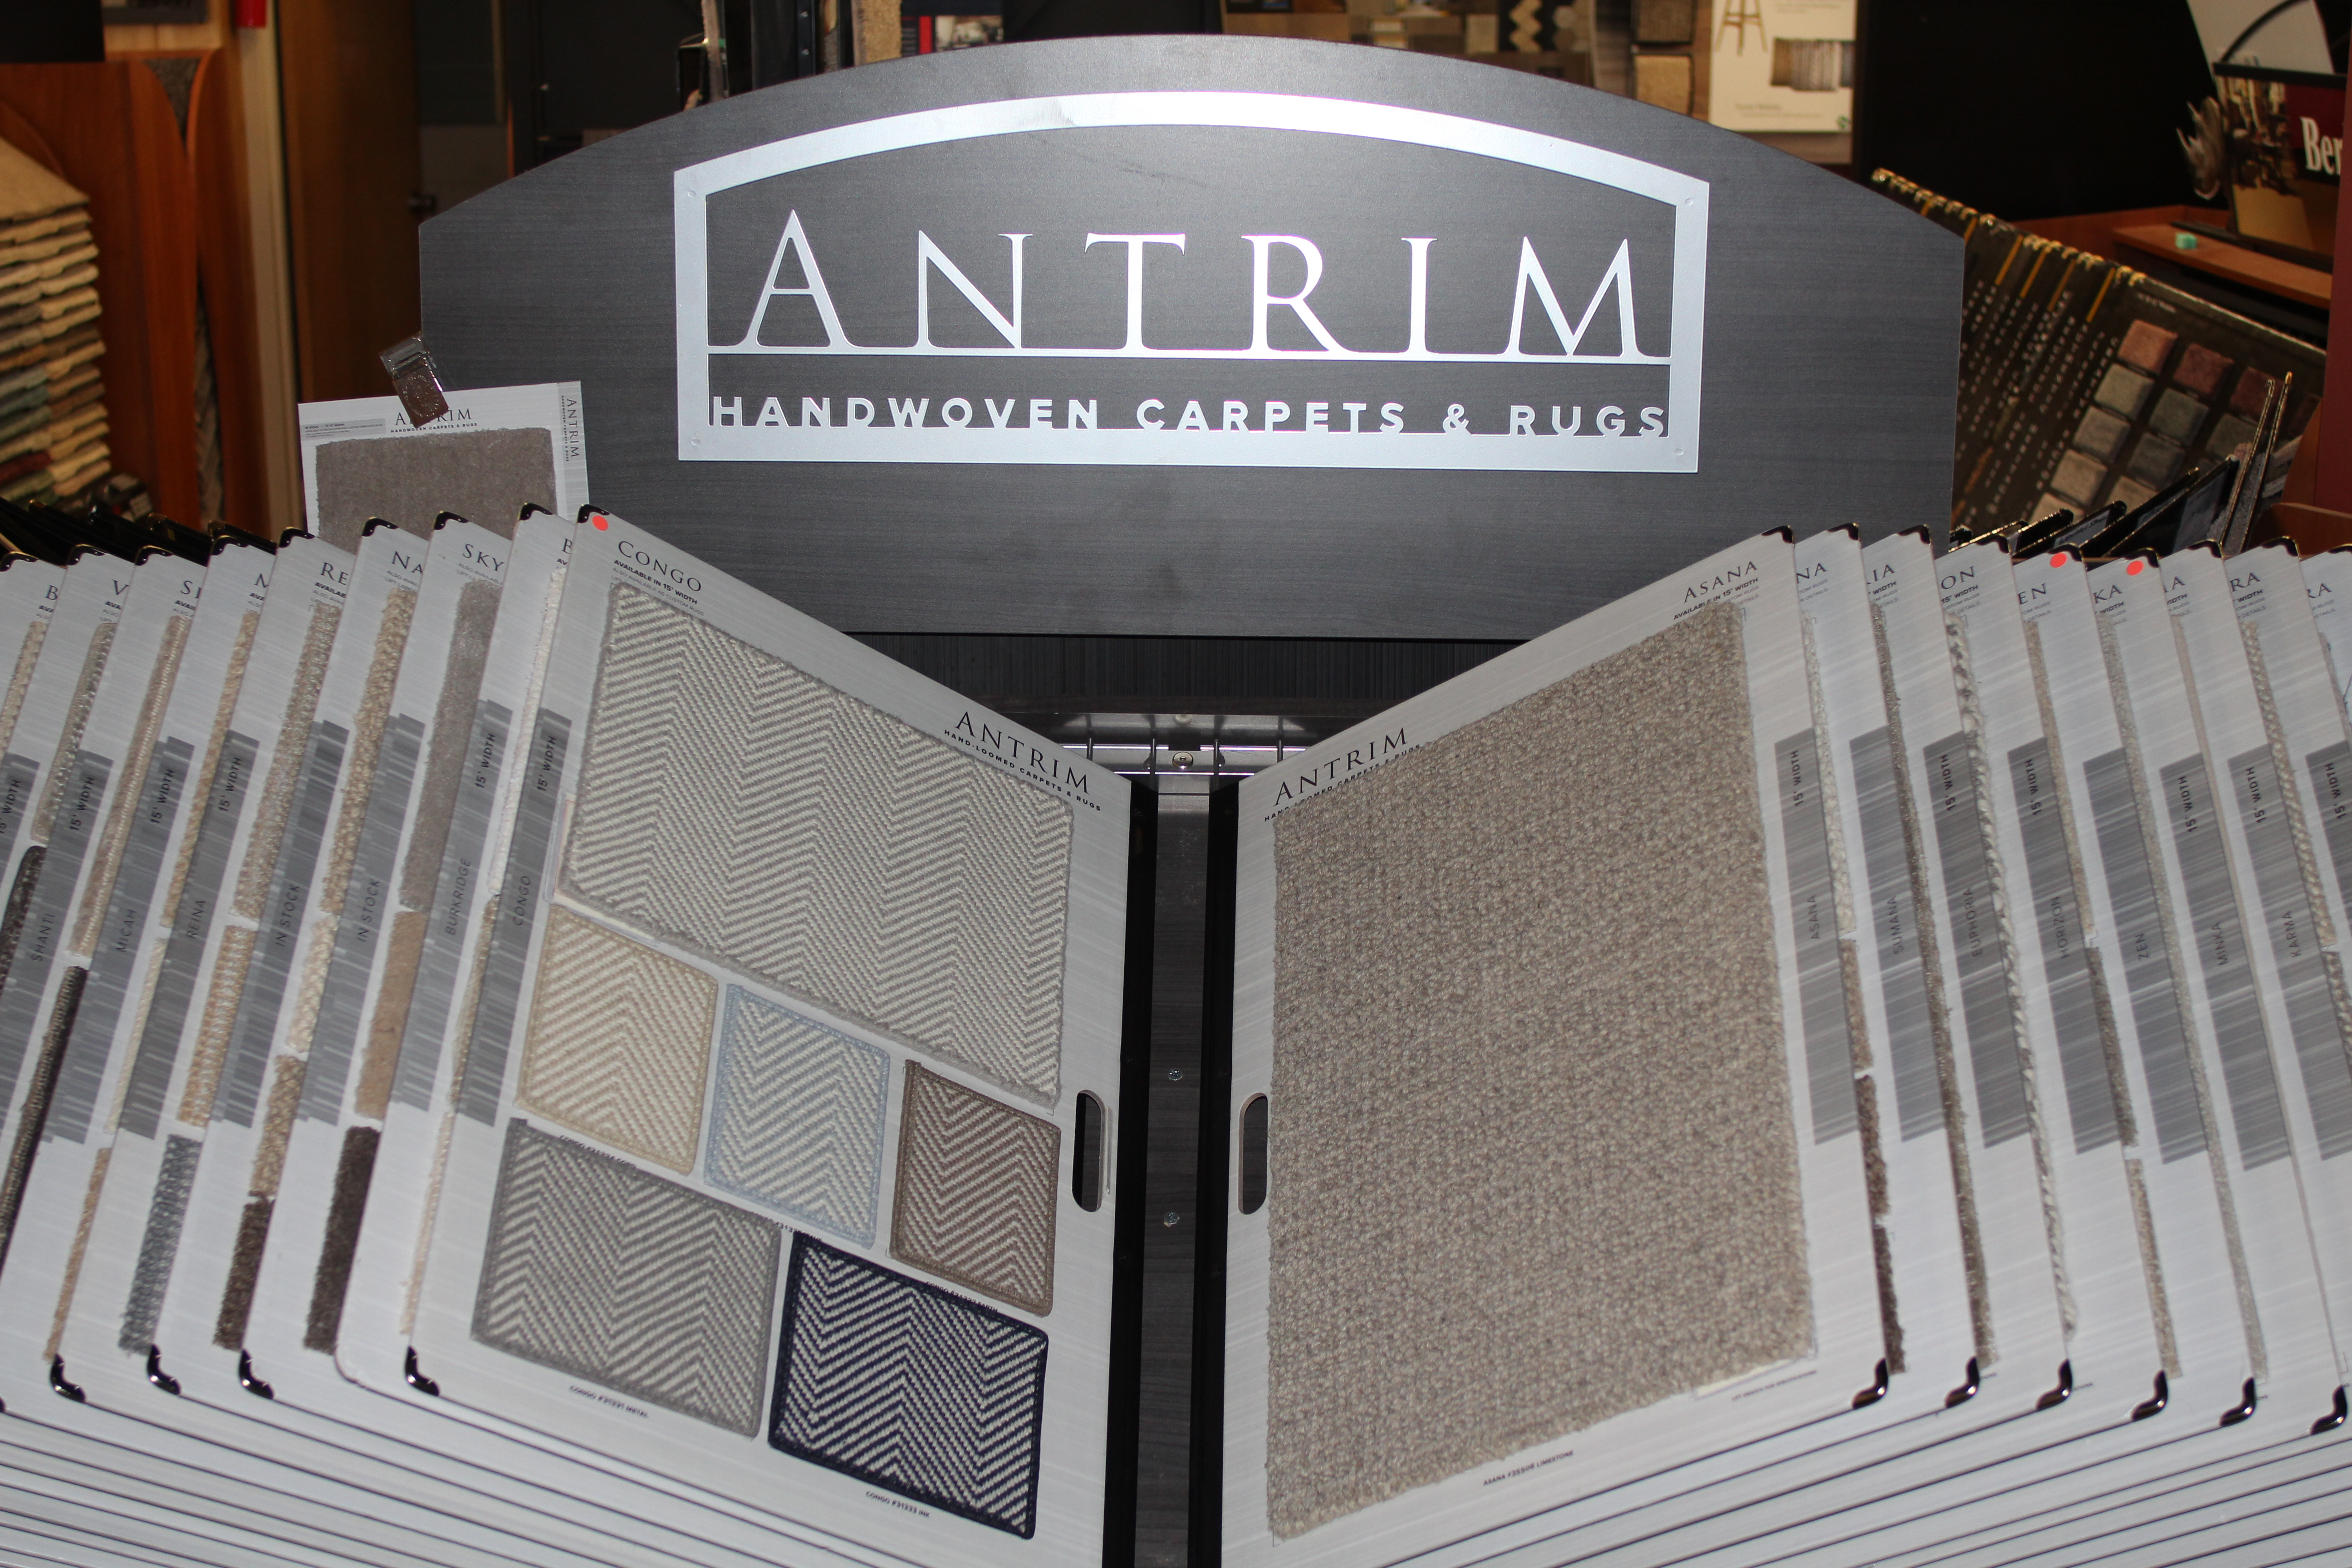 Antrim Handwoven Carpets & Rugs